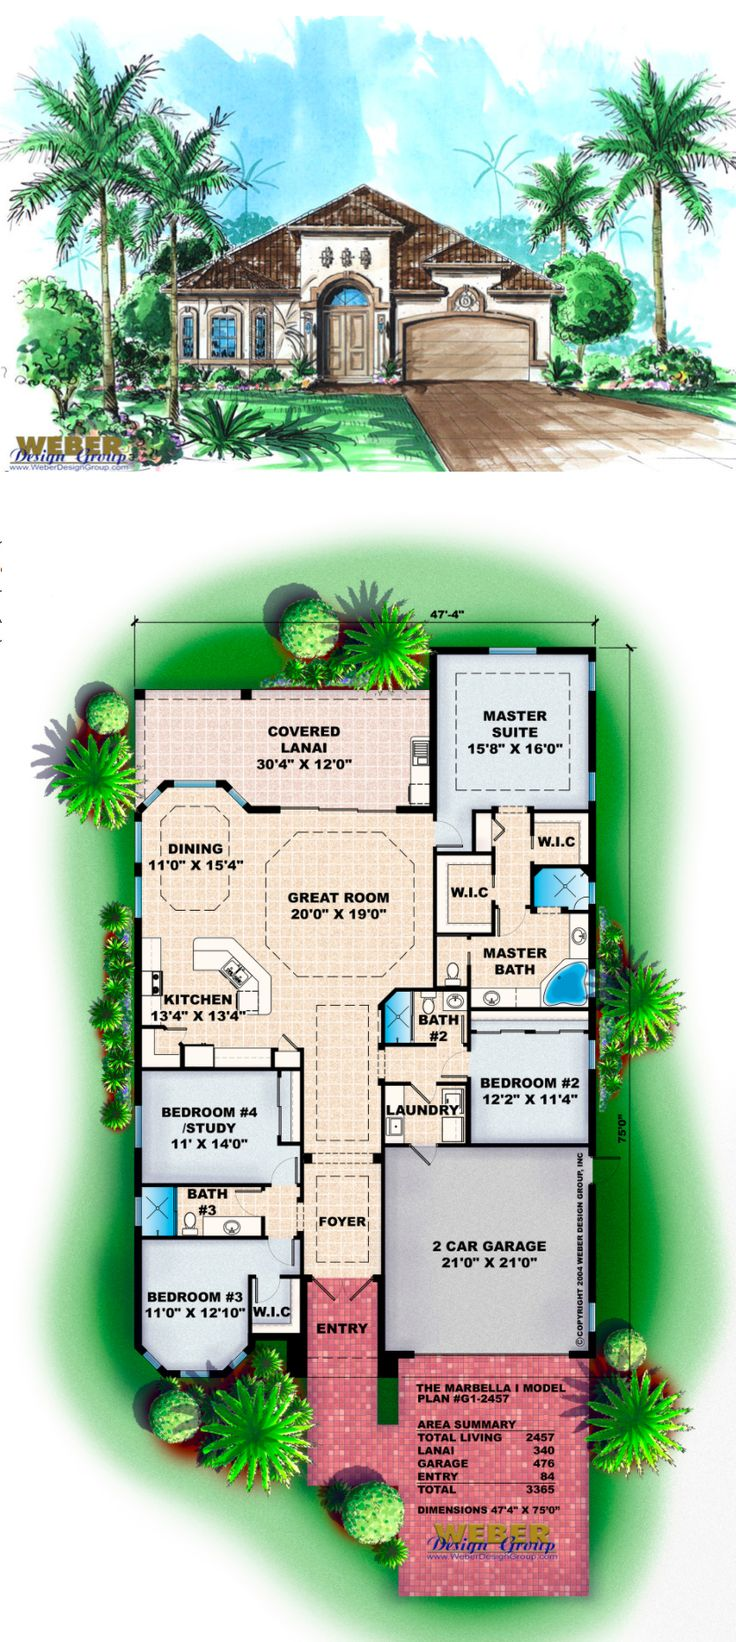 G1-2457 - Marbella I - Mediterranean House Plan.  4 bedrooms, 3 baths, 2,457 square feet of living area. Perfect for narrow lot.